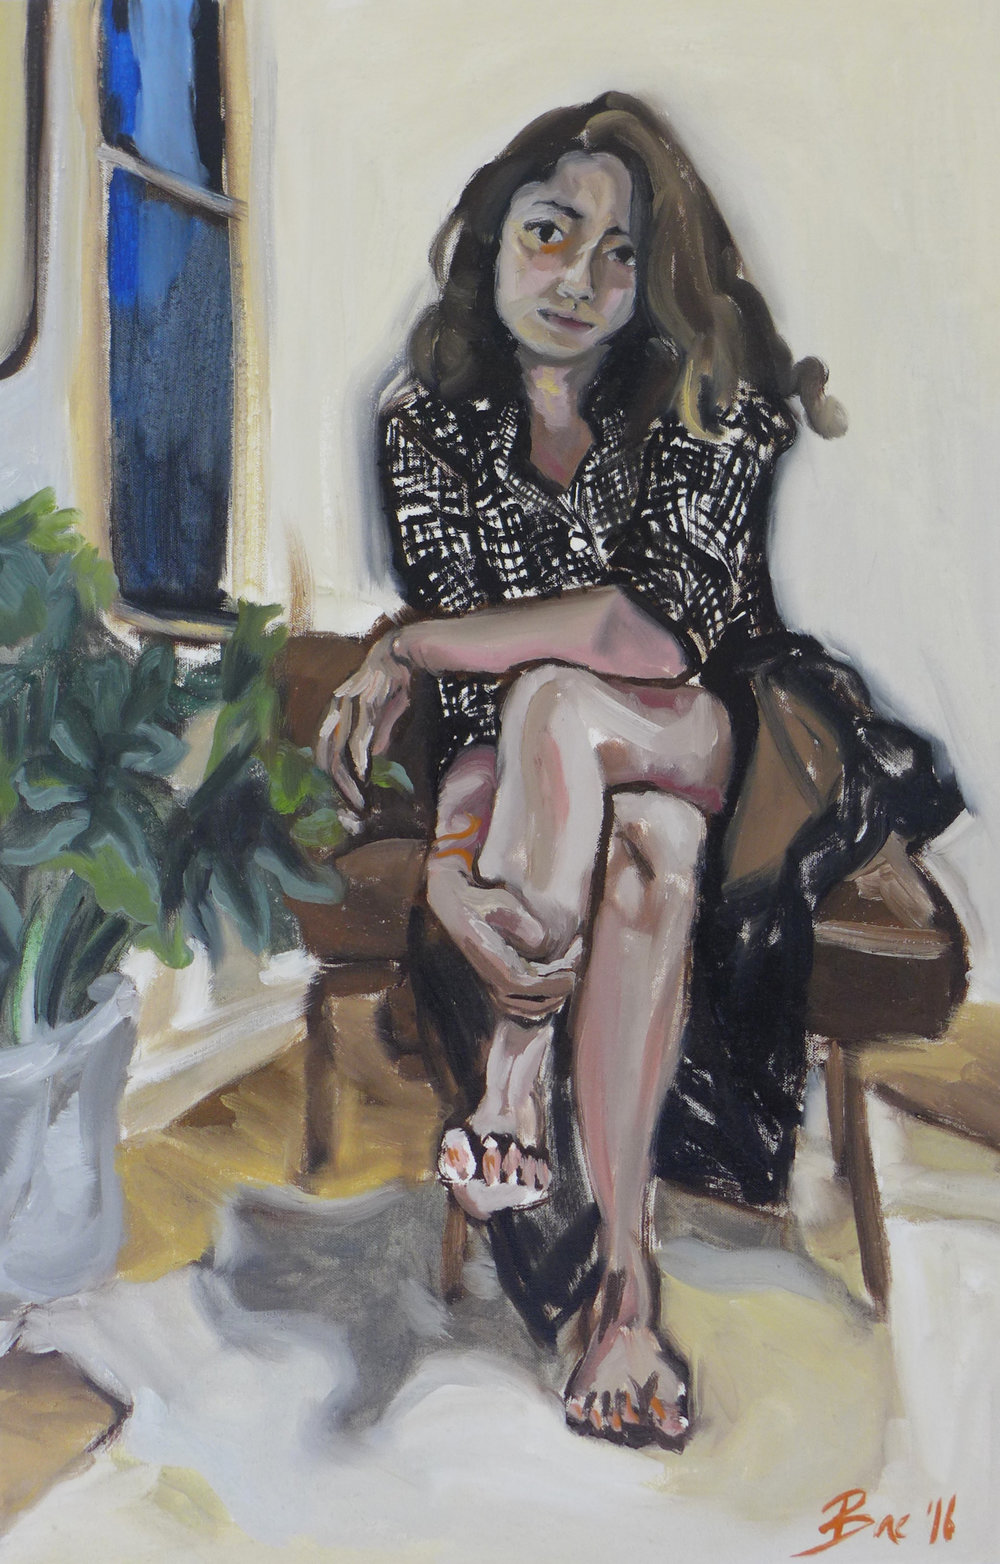 Courtney Bae, Courtney Bae, Oil on linen, 30x20 inches, $1400.jpg